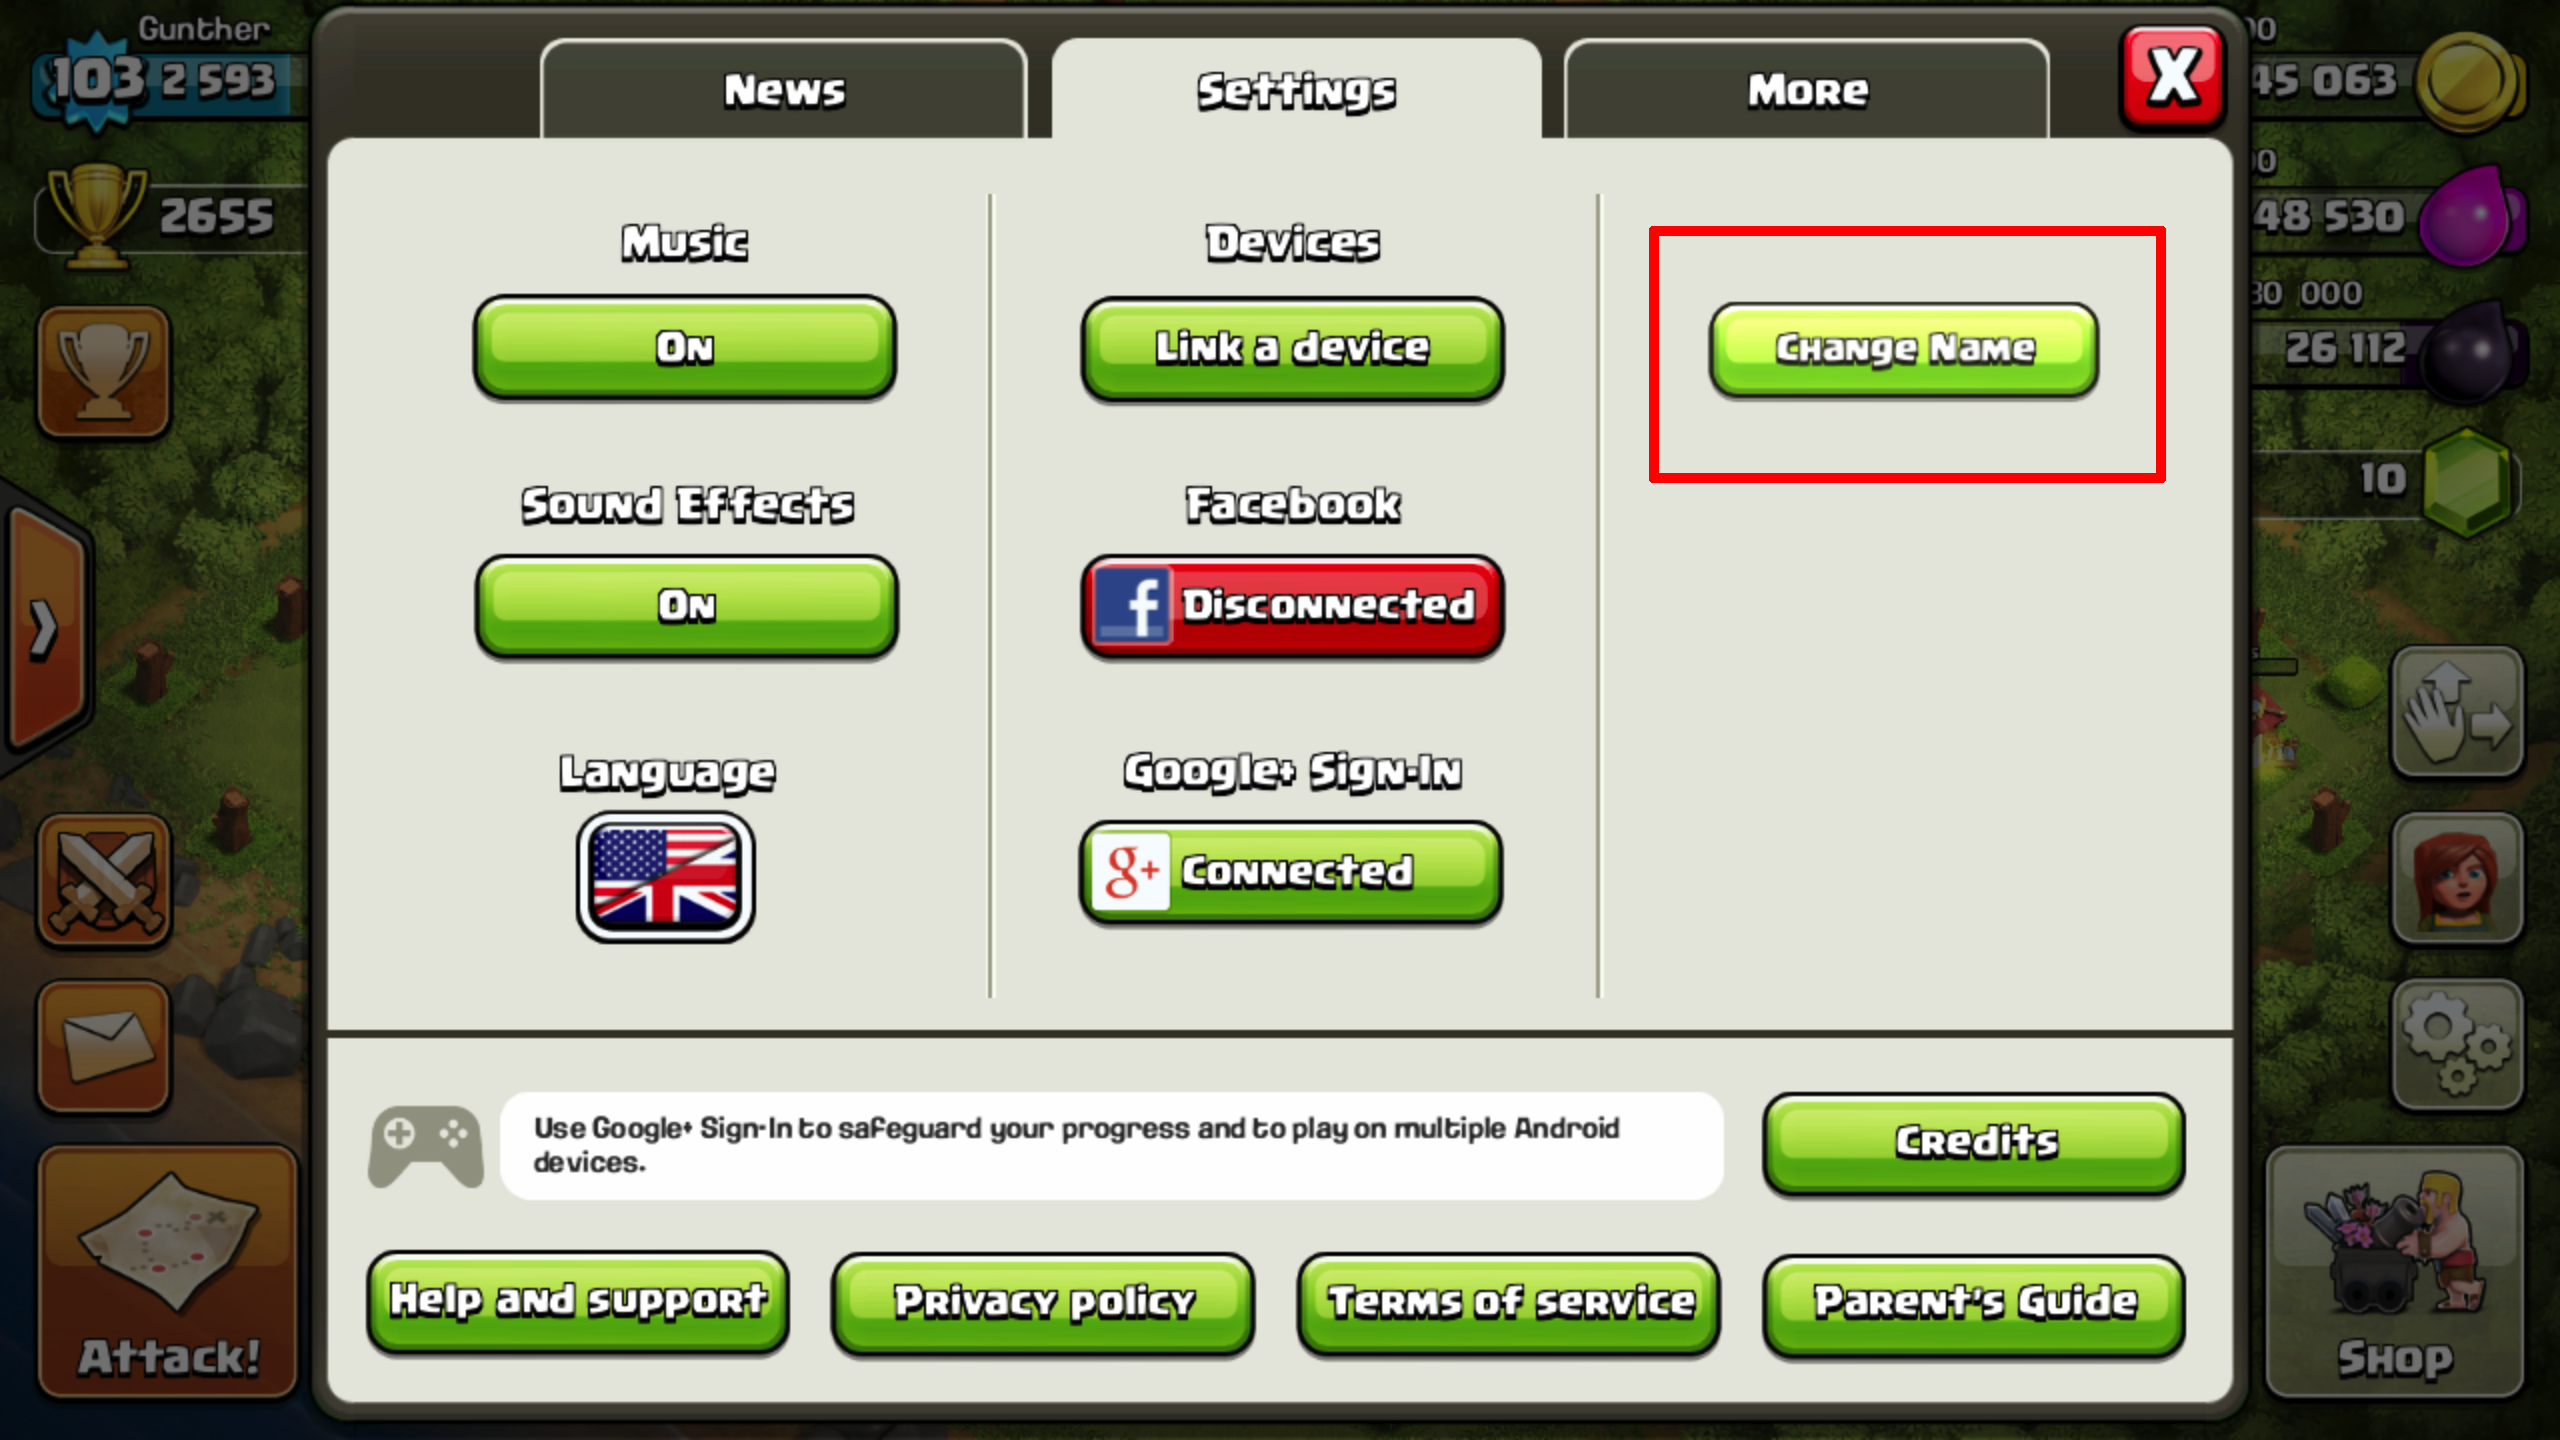 Quickly Clear Facebook Cache In Iphone Can I Change My Village's Name? Faq  And Support